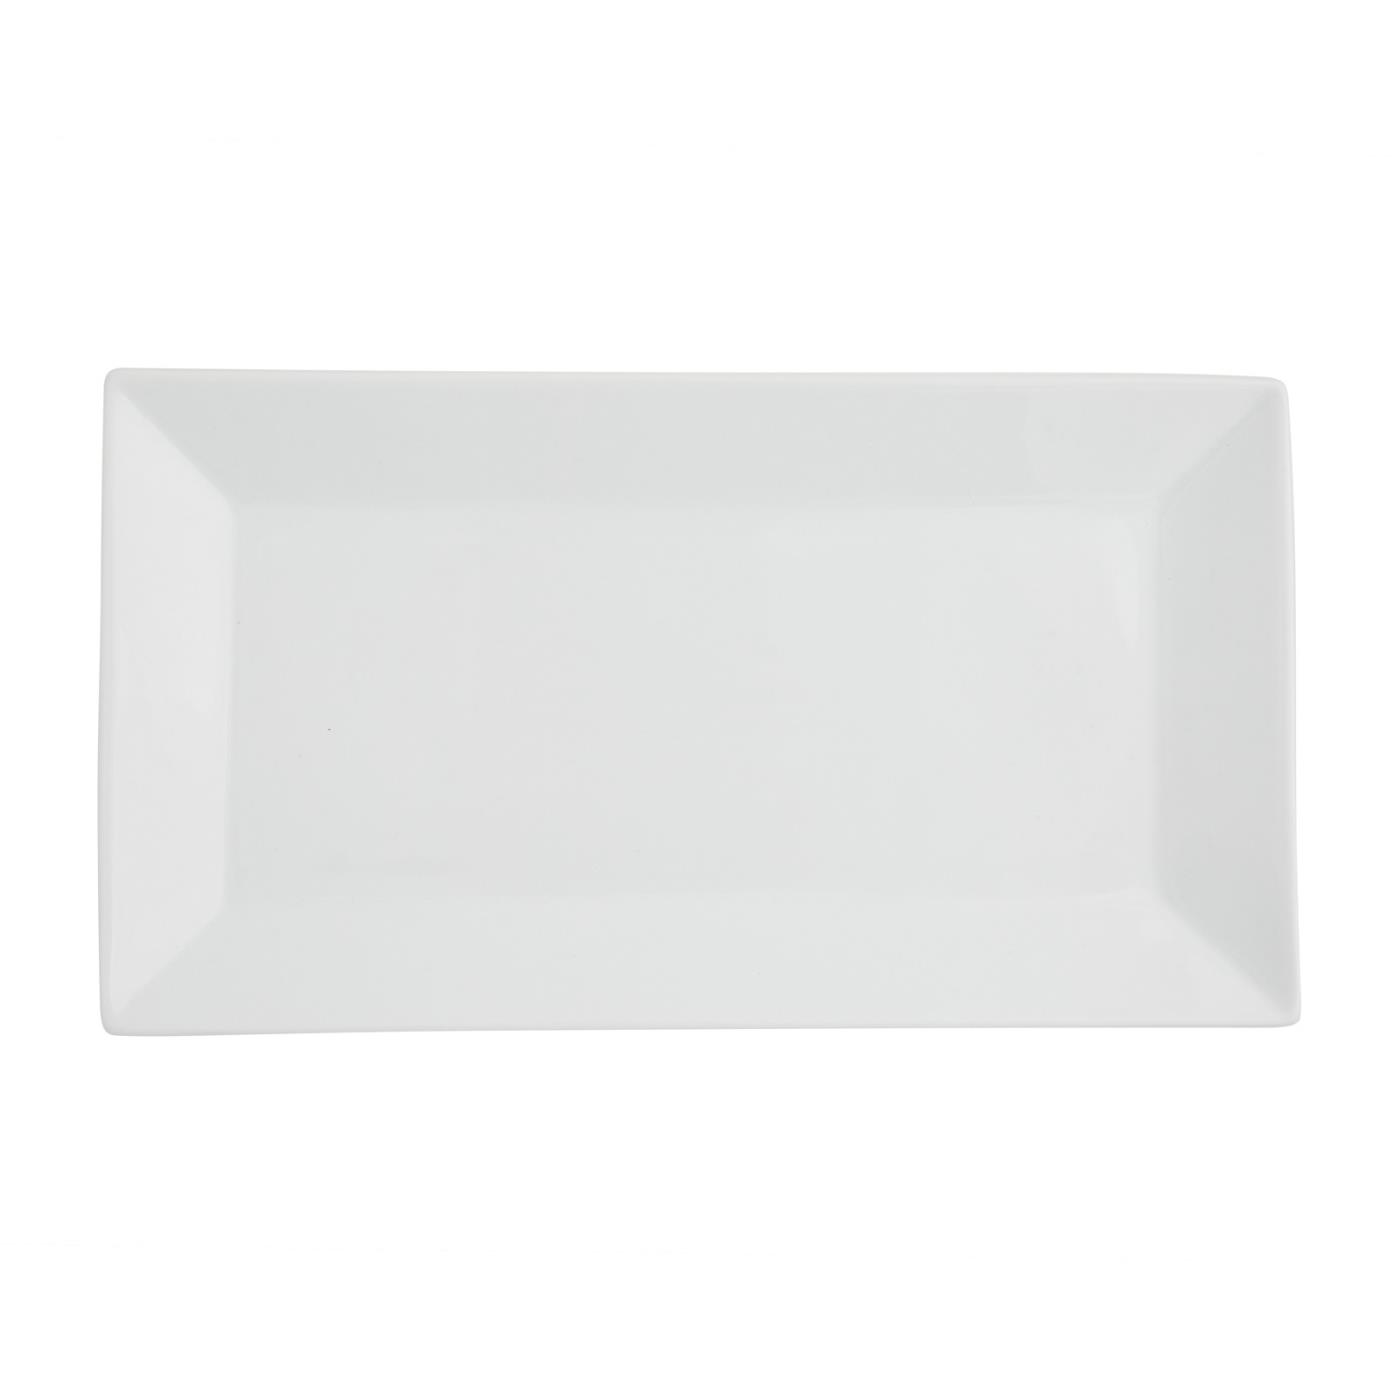 "White Rectangular -  6.25"" x 11.5"""